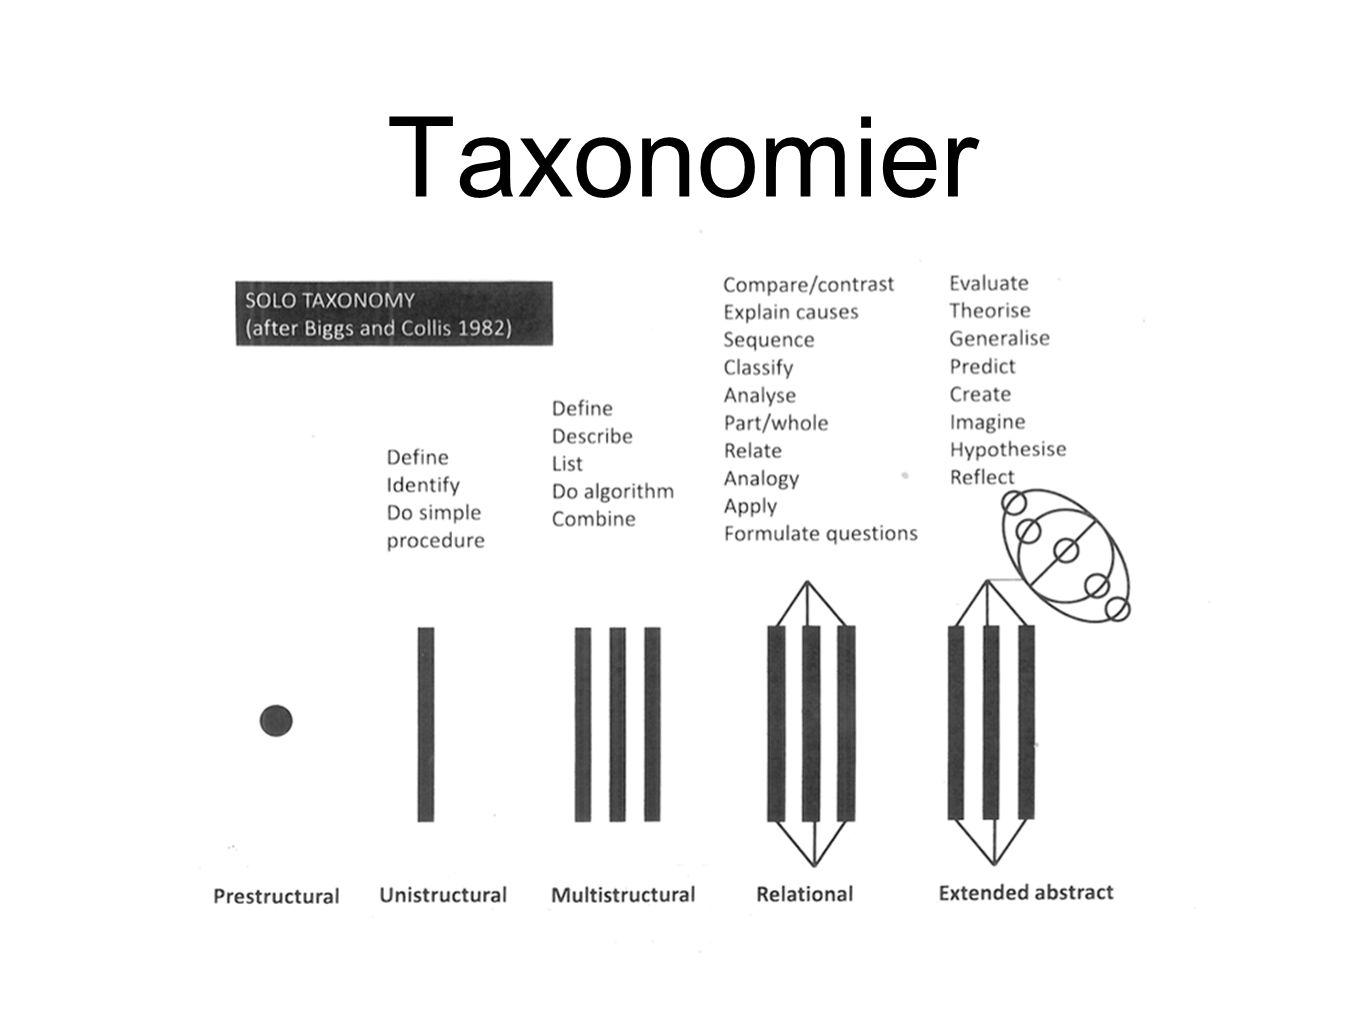 Taxonomier Text